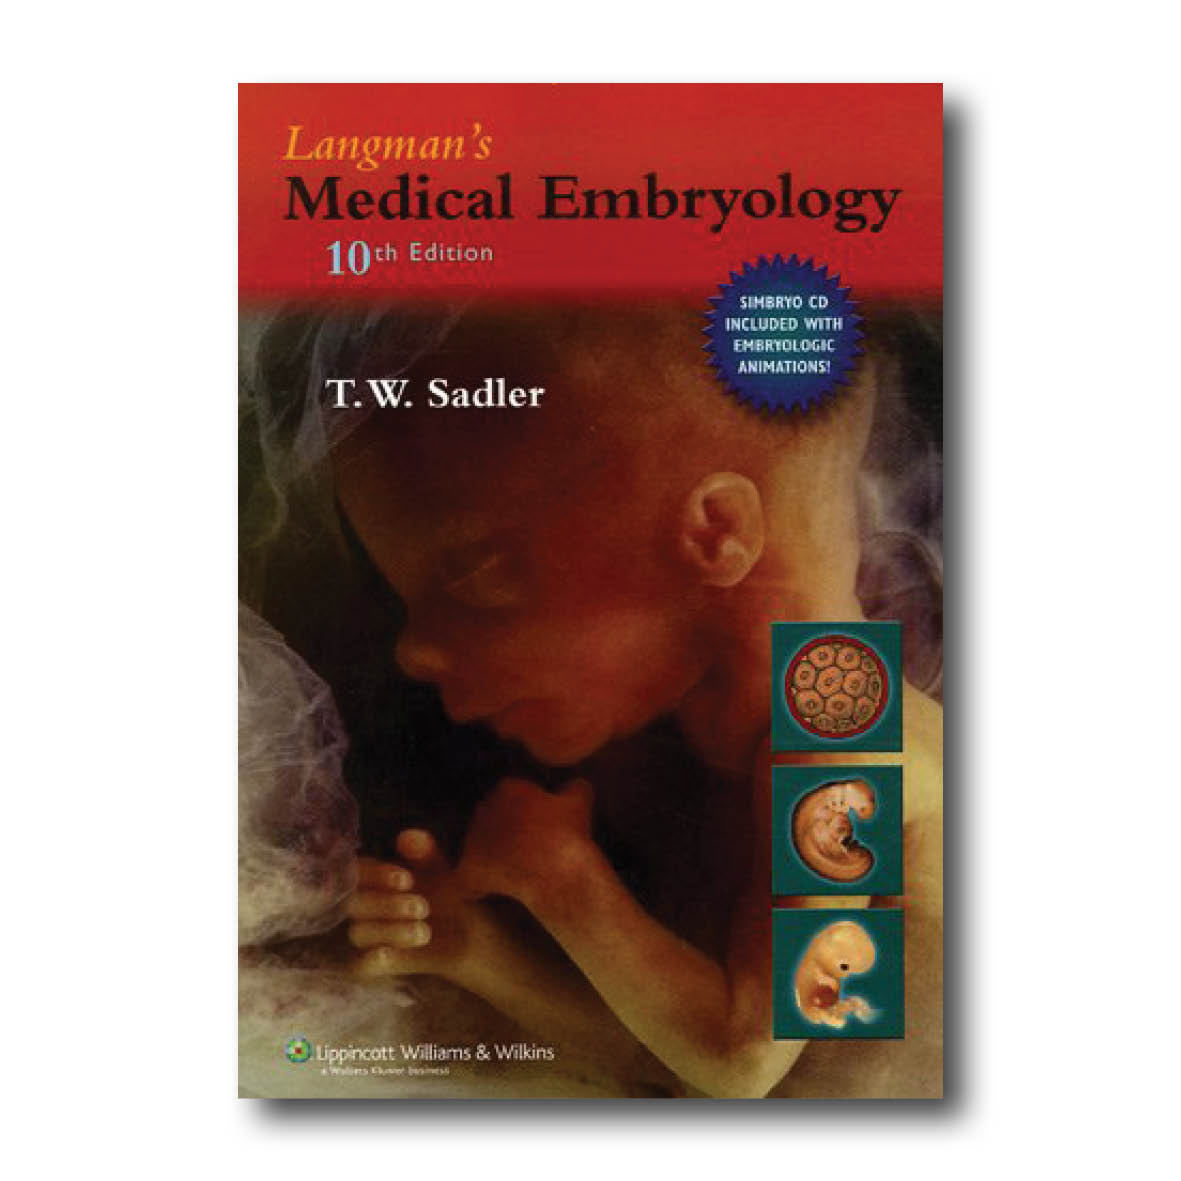 Sadler TW 2006 Langman's Medical Embryology Maryland Lippincott Williams & Wilkins